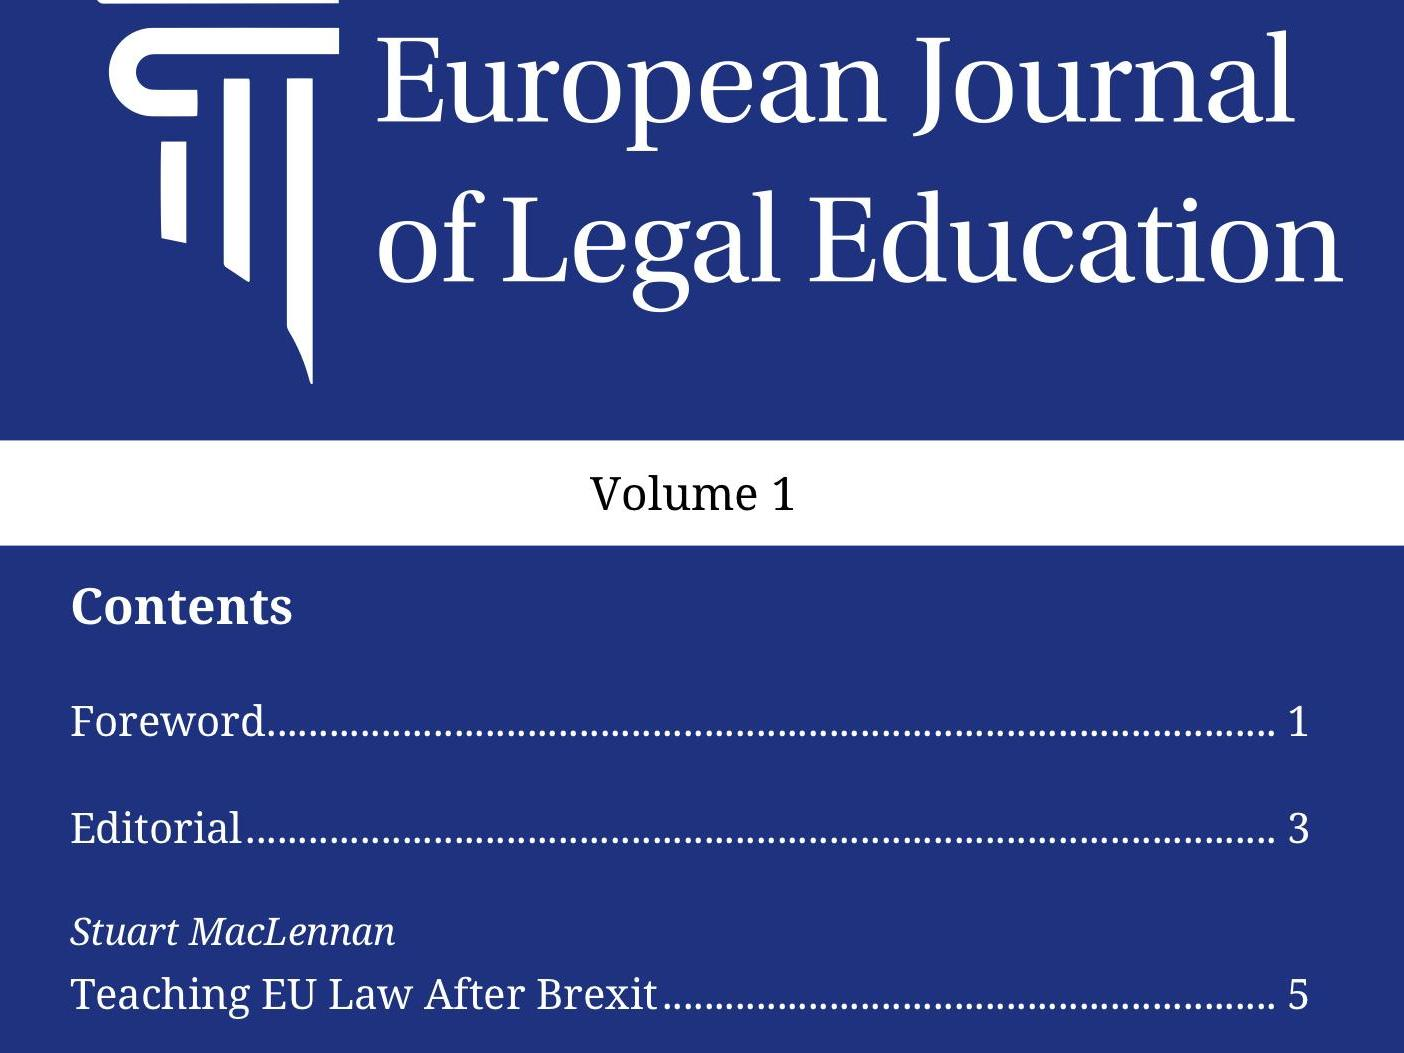 How global should legal education be?